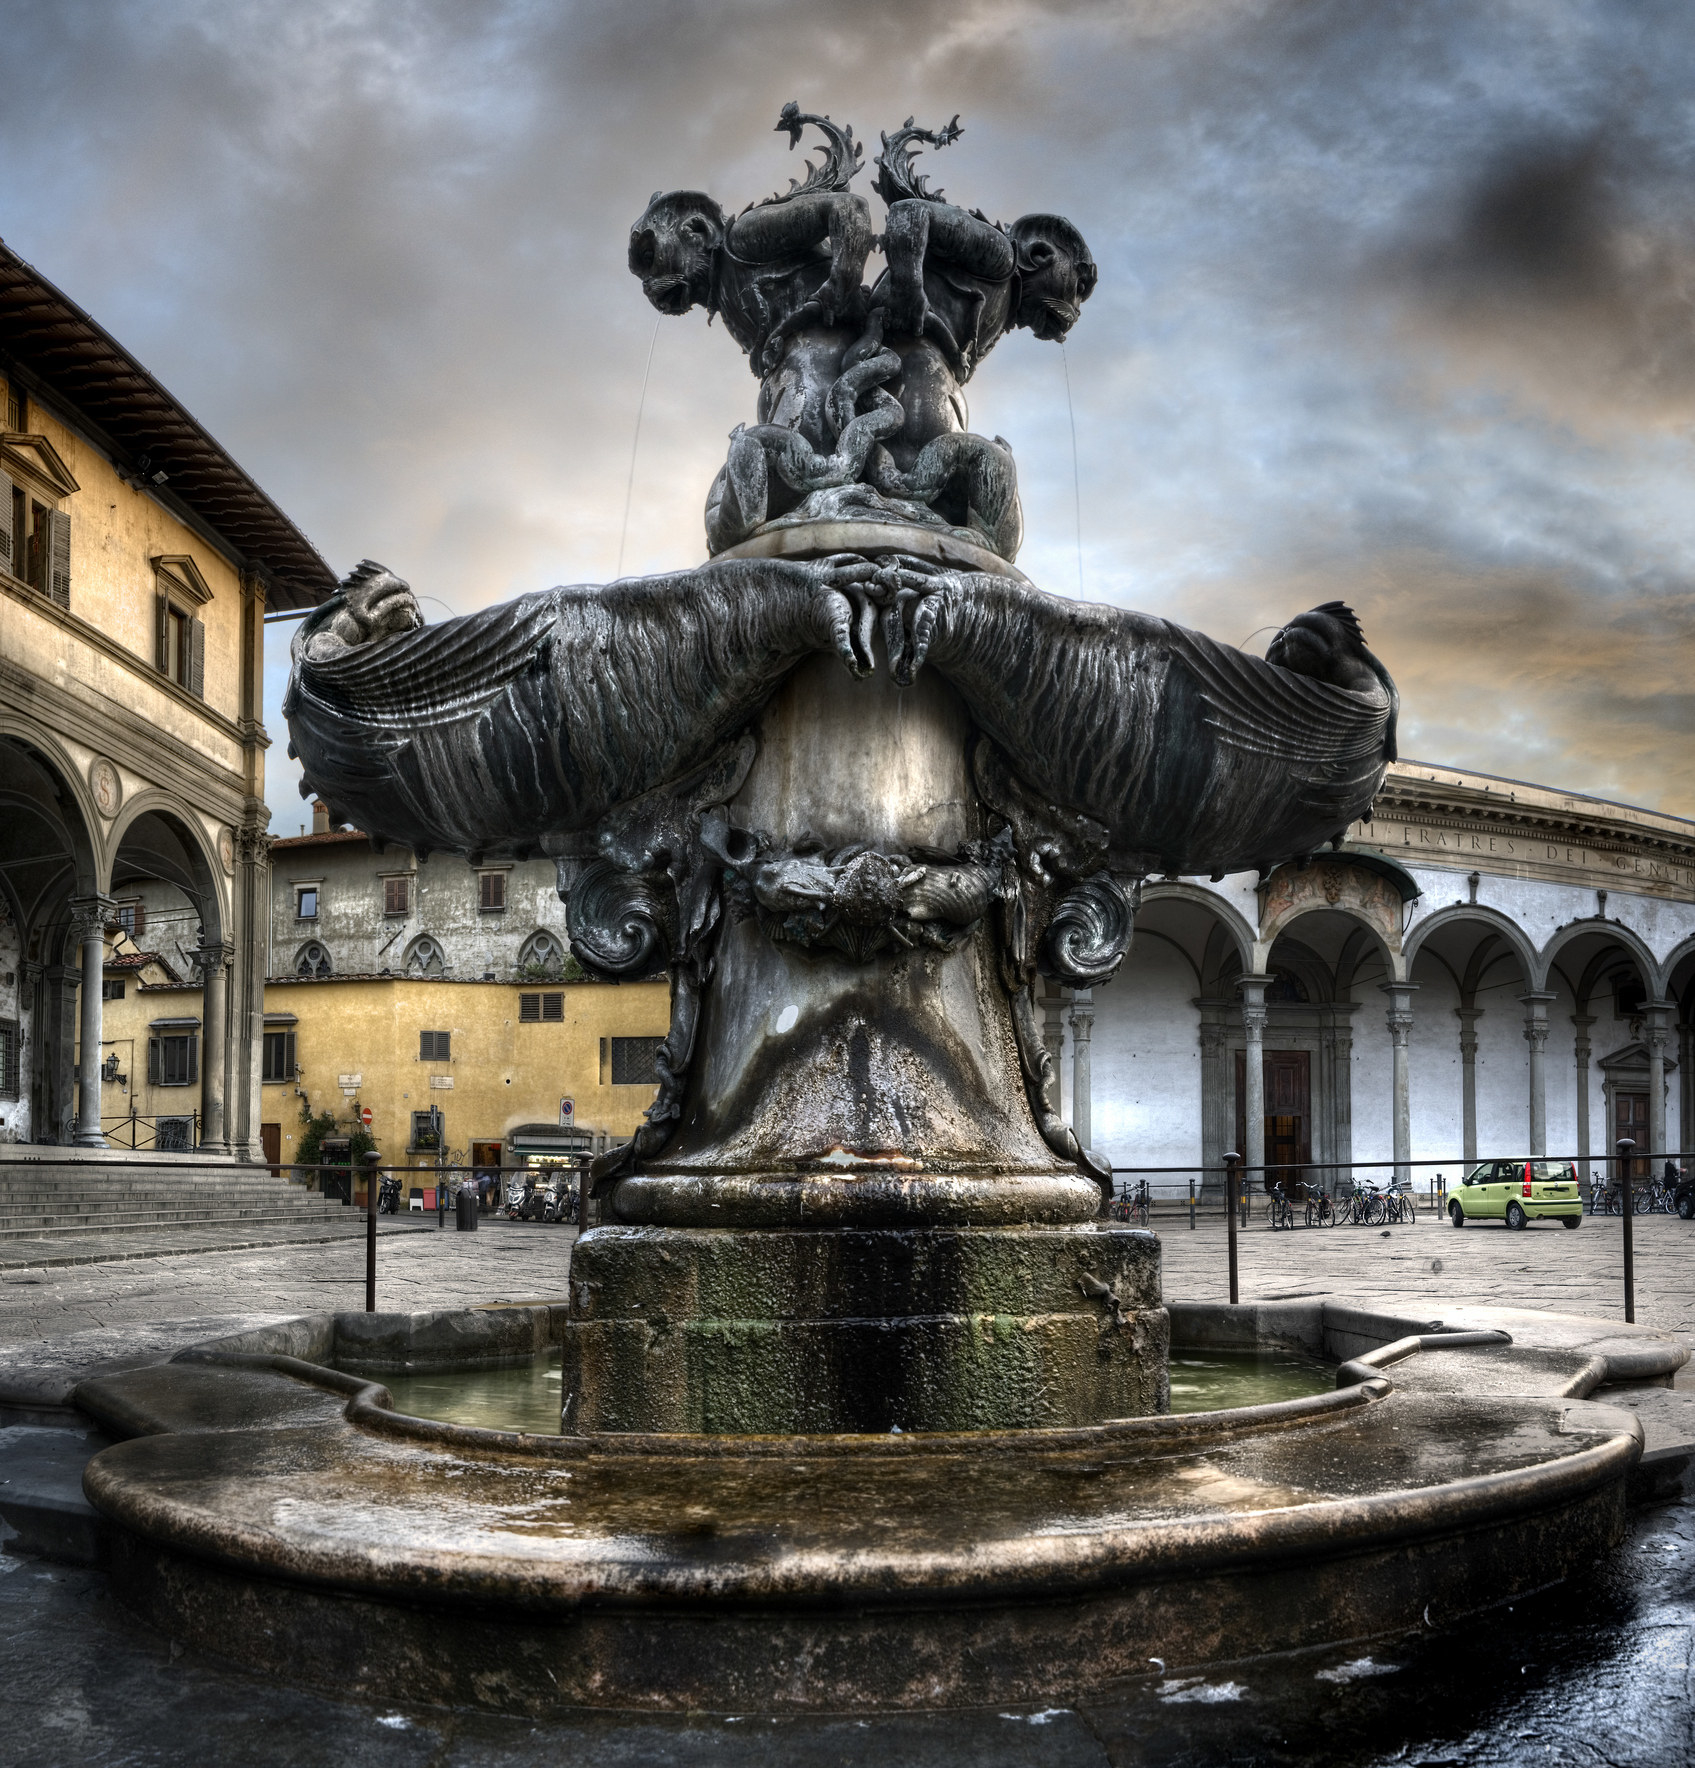 Fountain of the sea monsters in Piazza Santissima Annunziata in Florence, Italy